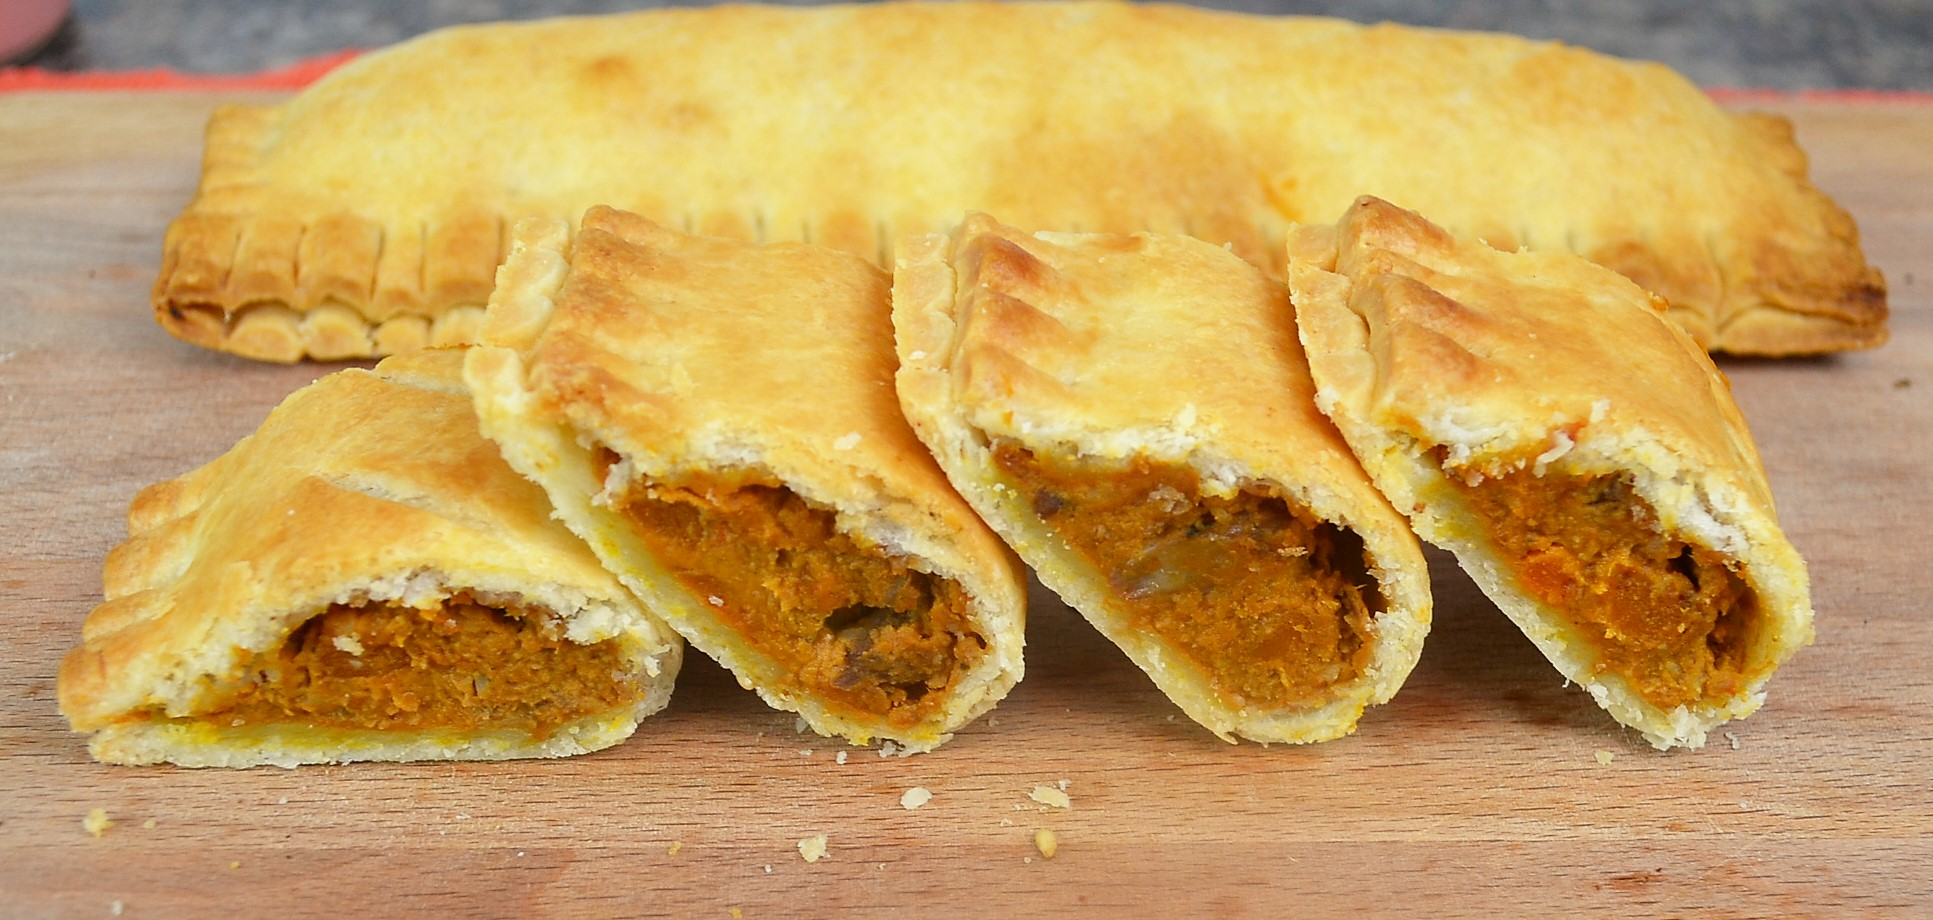 Vegetarian Snacks Butternut Squash, Blue Cheese and Walnut Pastries Recipe dontask4salt